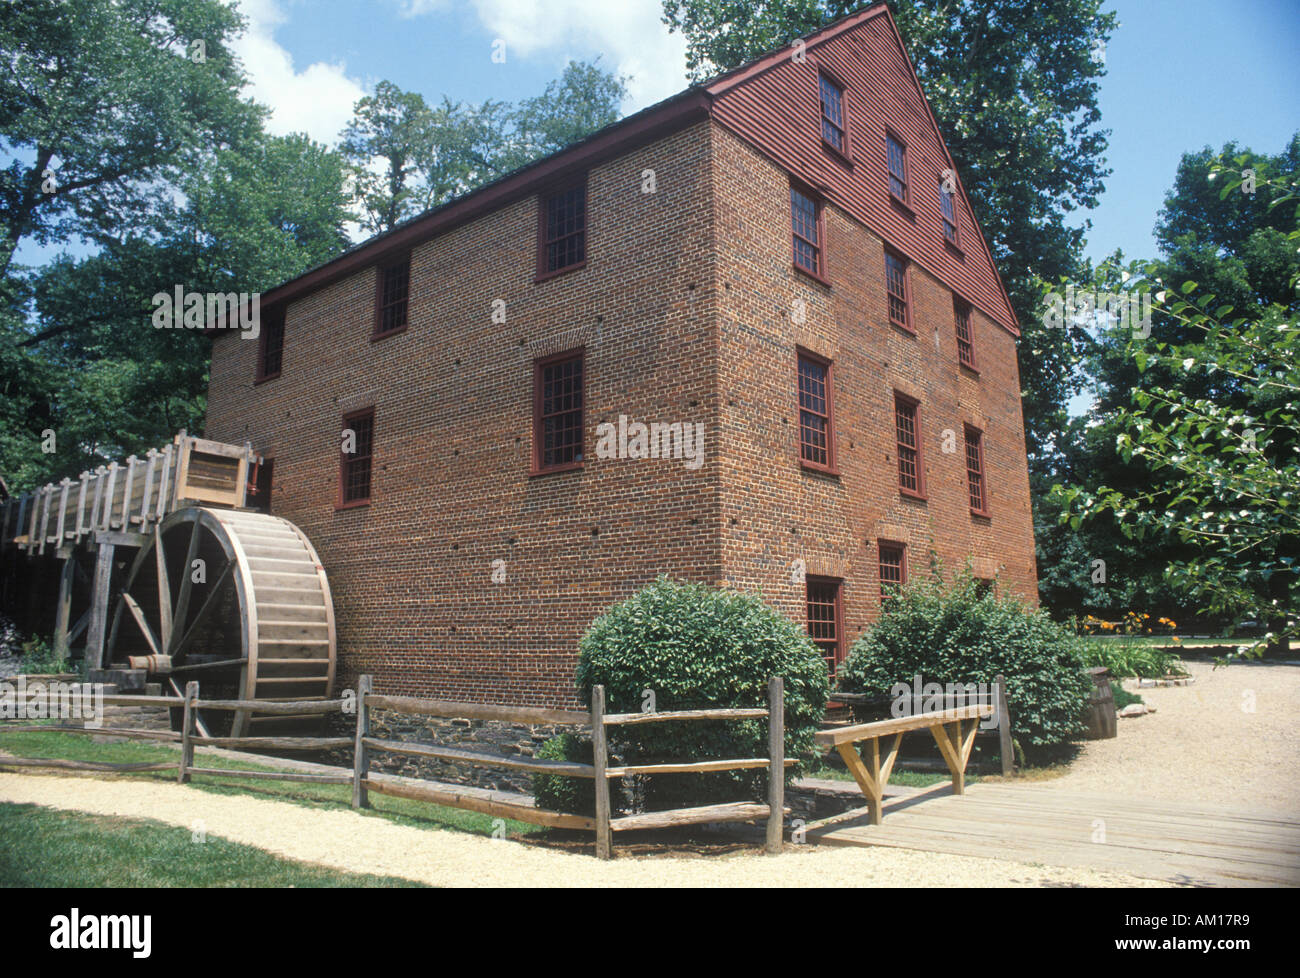 Exterior of Colvin Run grist mill Fairfax Virginia - Stock Image